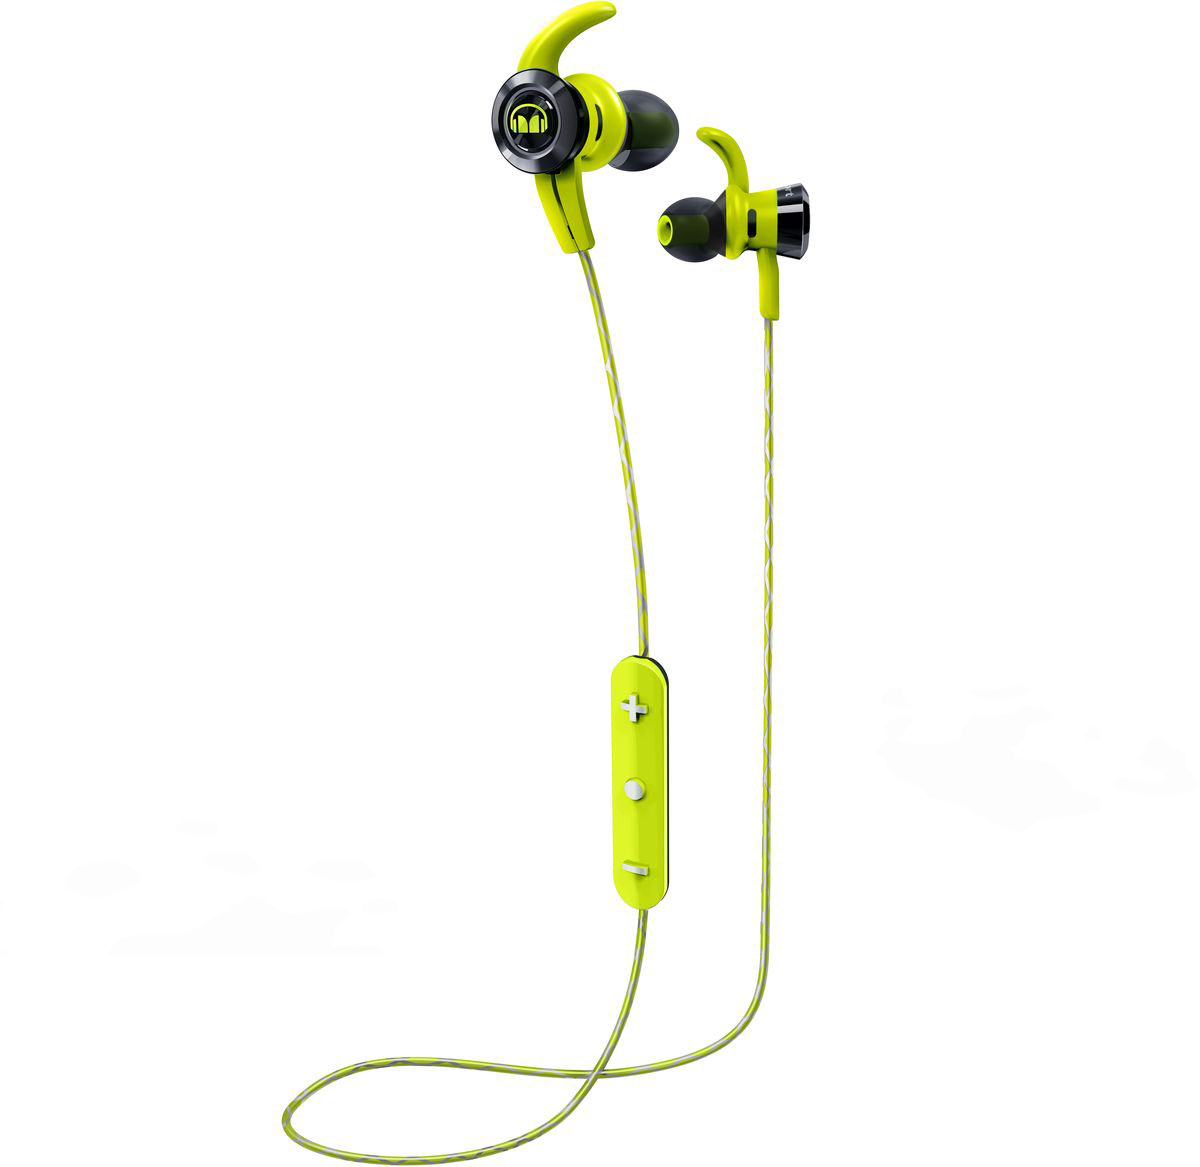 Monster iSport Victory In-Ear Wireless, Green наушники аудио наушники monster наушники с микрофоном monster clarity hd white in ear headphones